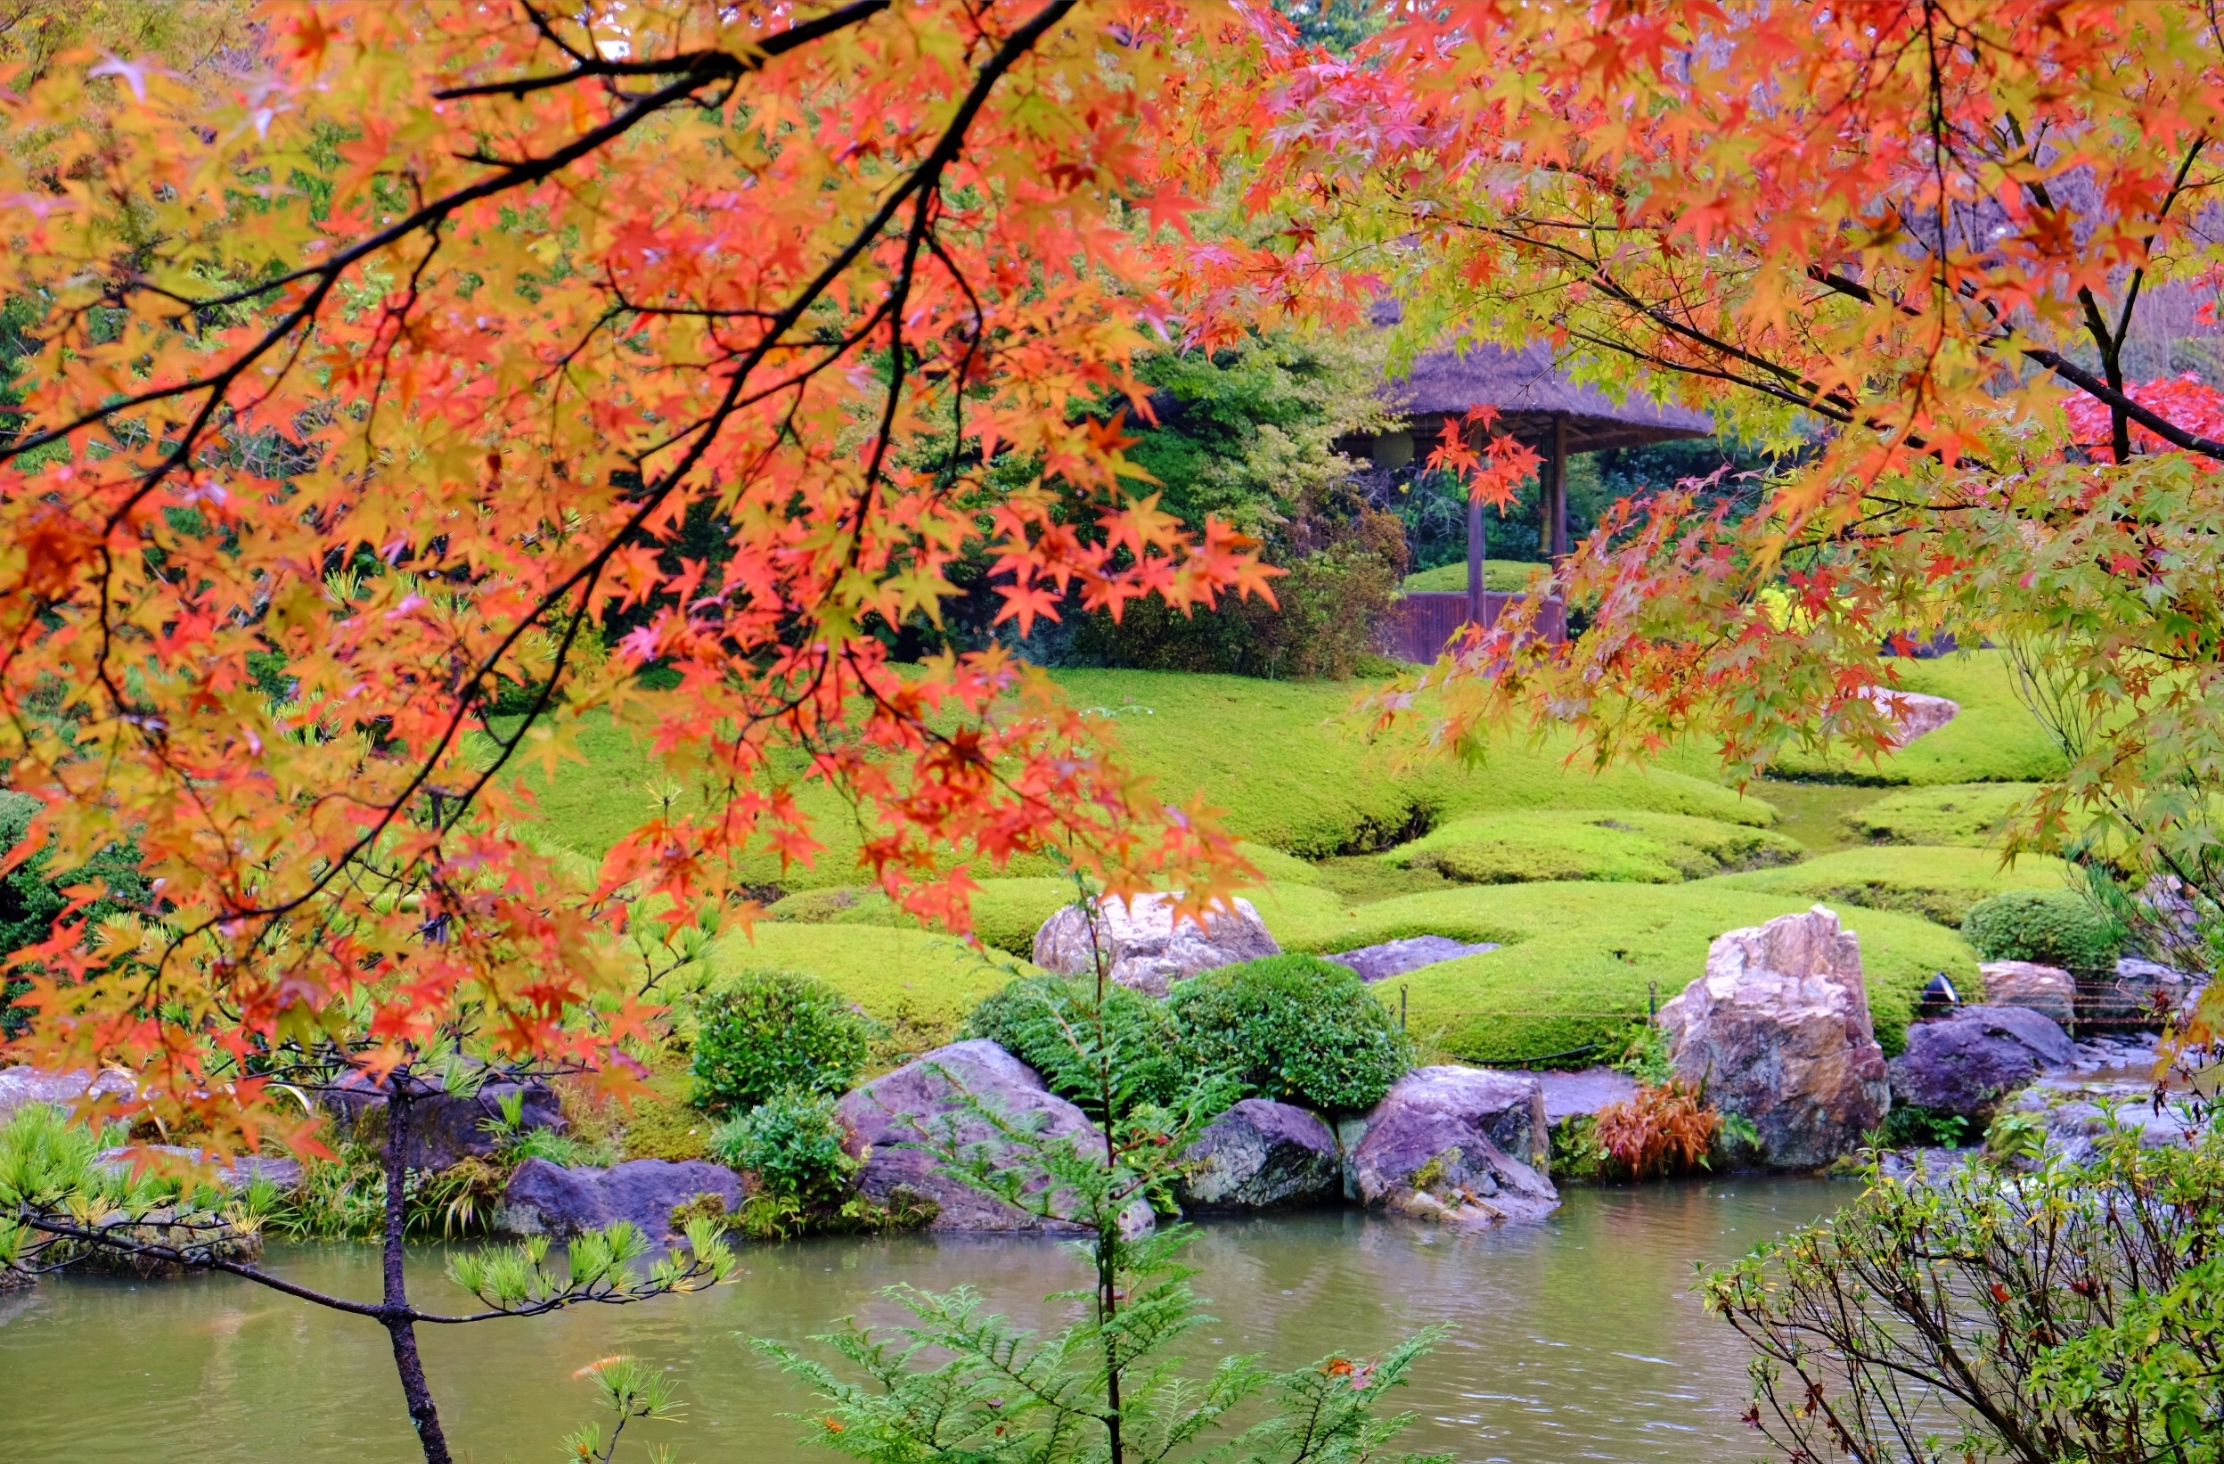 Walk in autumn colored garden